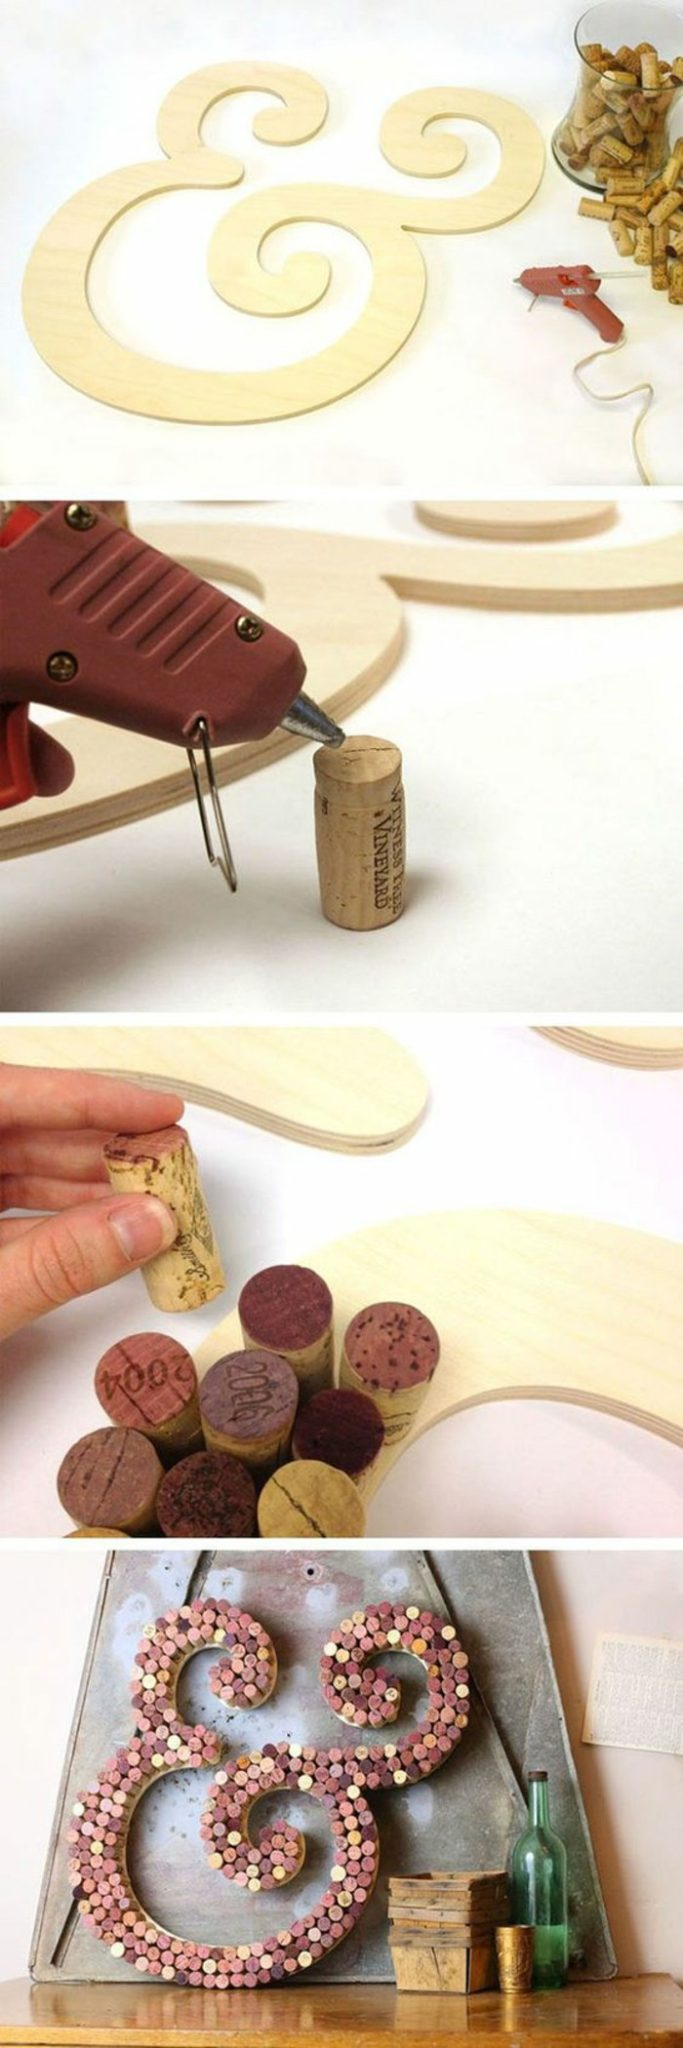 diy-ideas-with-corks20